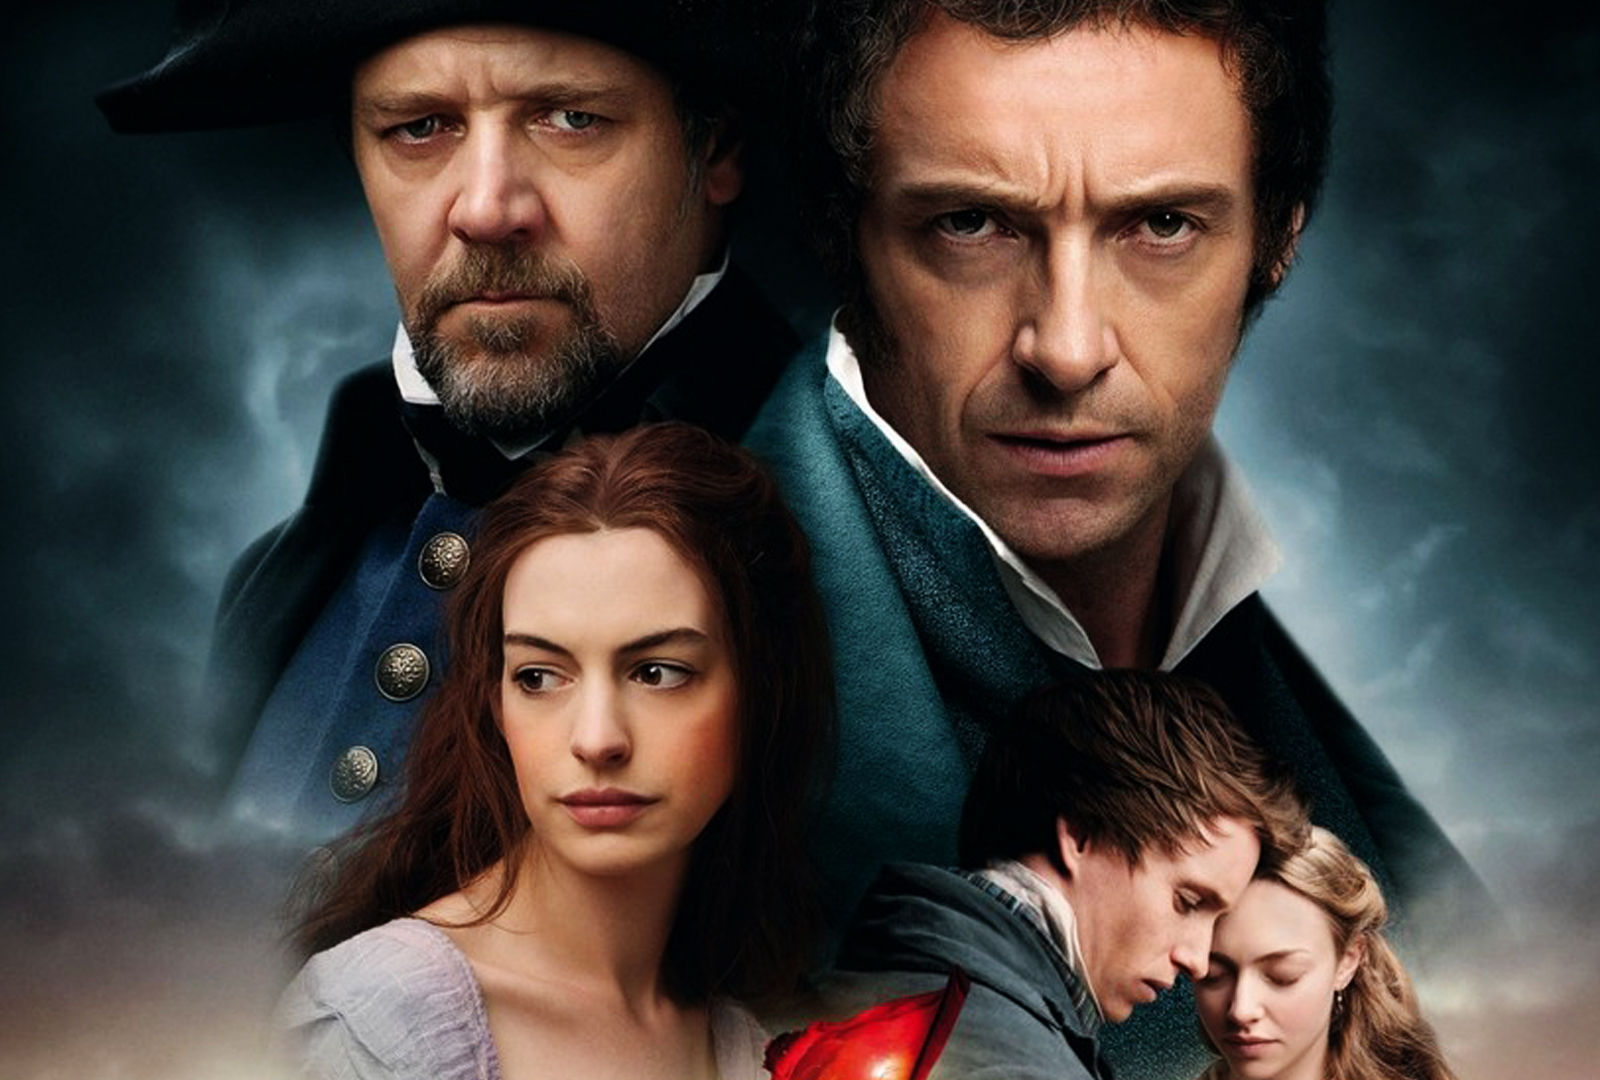 character study les miserables Analysis and discussion of characters in victor hugo's les misérables  les misérables characters victor hugo  who are the characters in the work les miserablesand what is their big role .